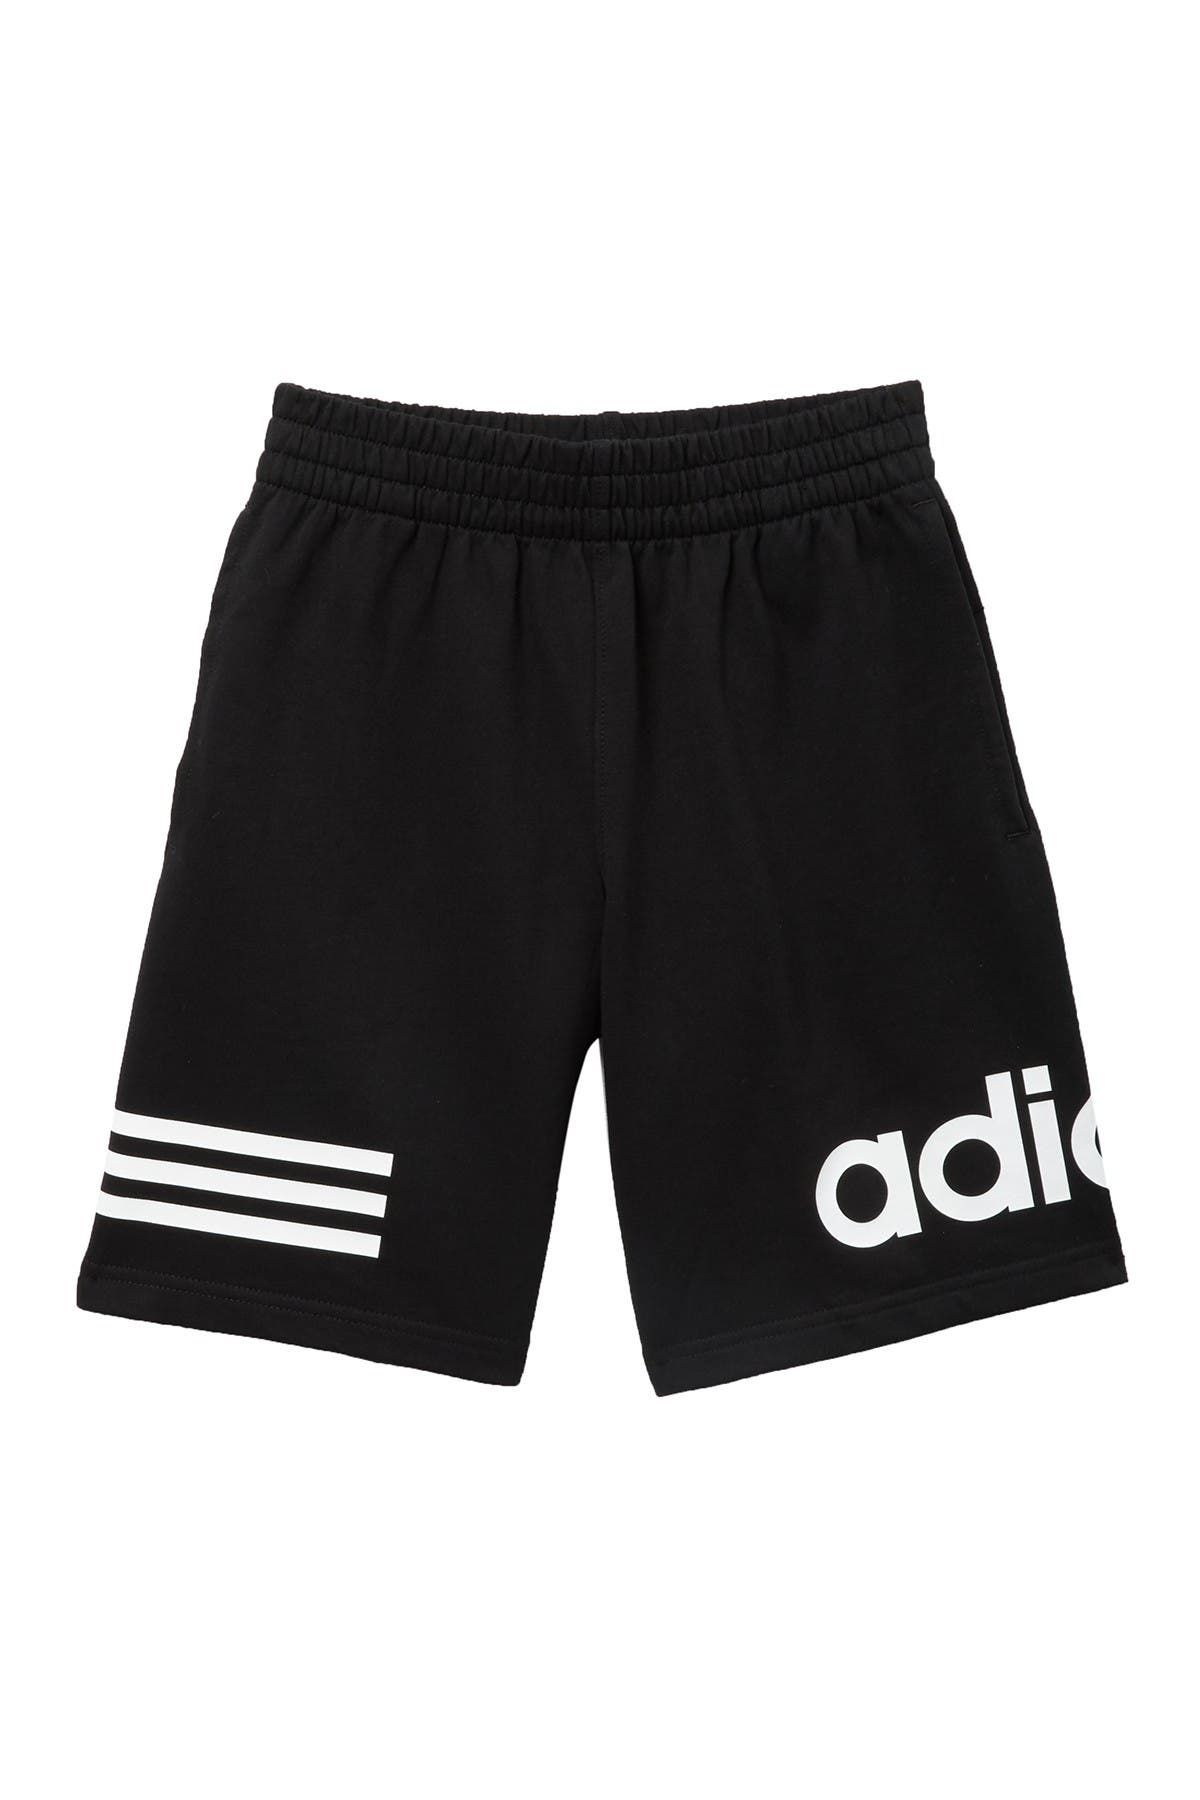 Image of adidas FT Core Shorts